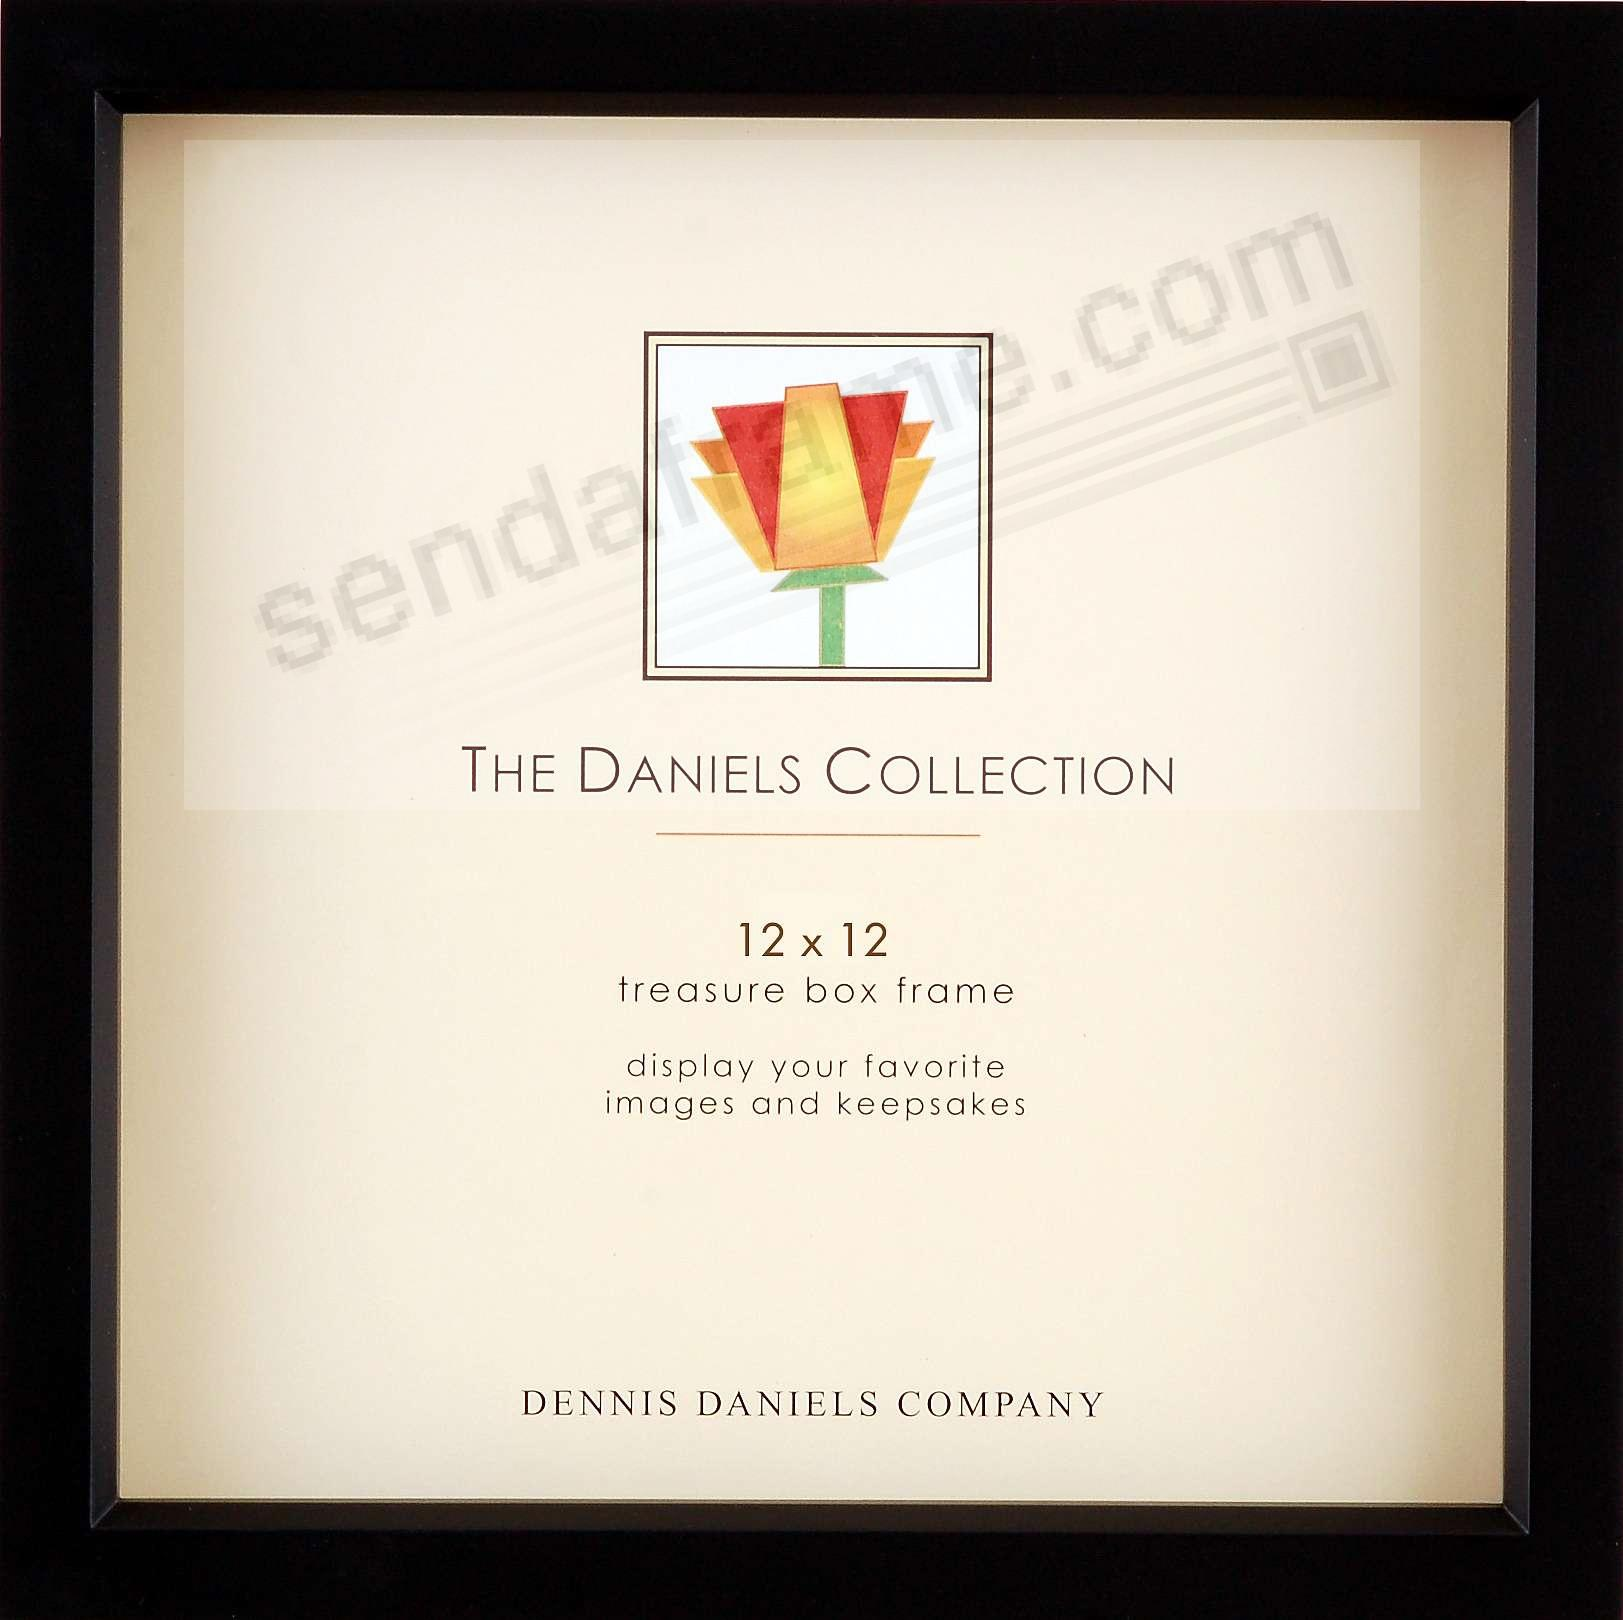 Ebony black stain 12x12 shadow box ½in deep for your print or collectibles by Dennis Daniels®